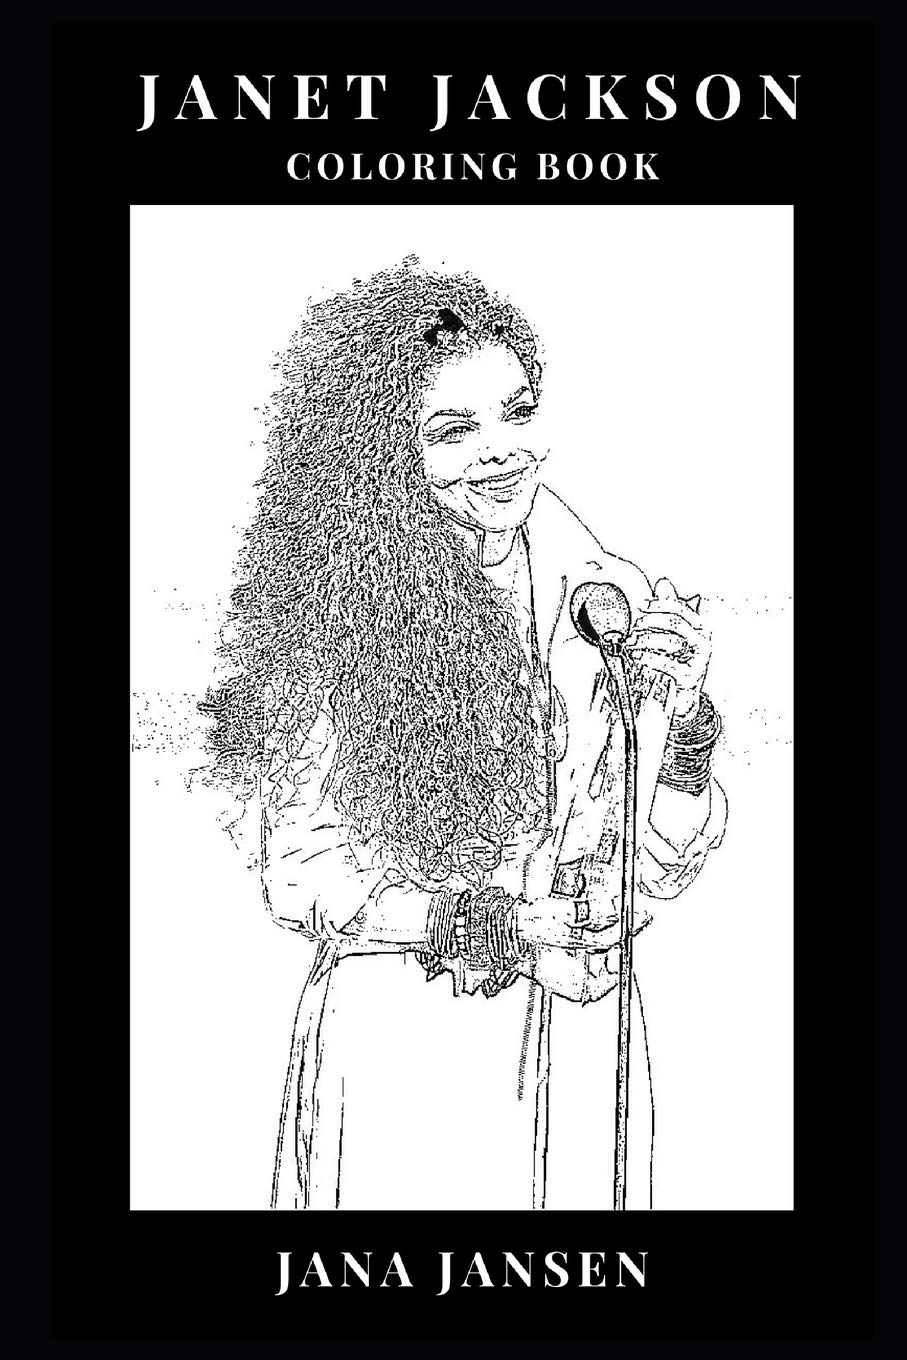 Janet Jackson Coloring Book Michael Jackson S Sister And Talented